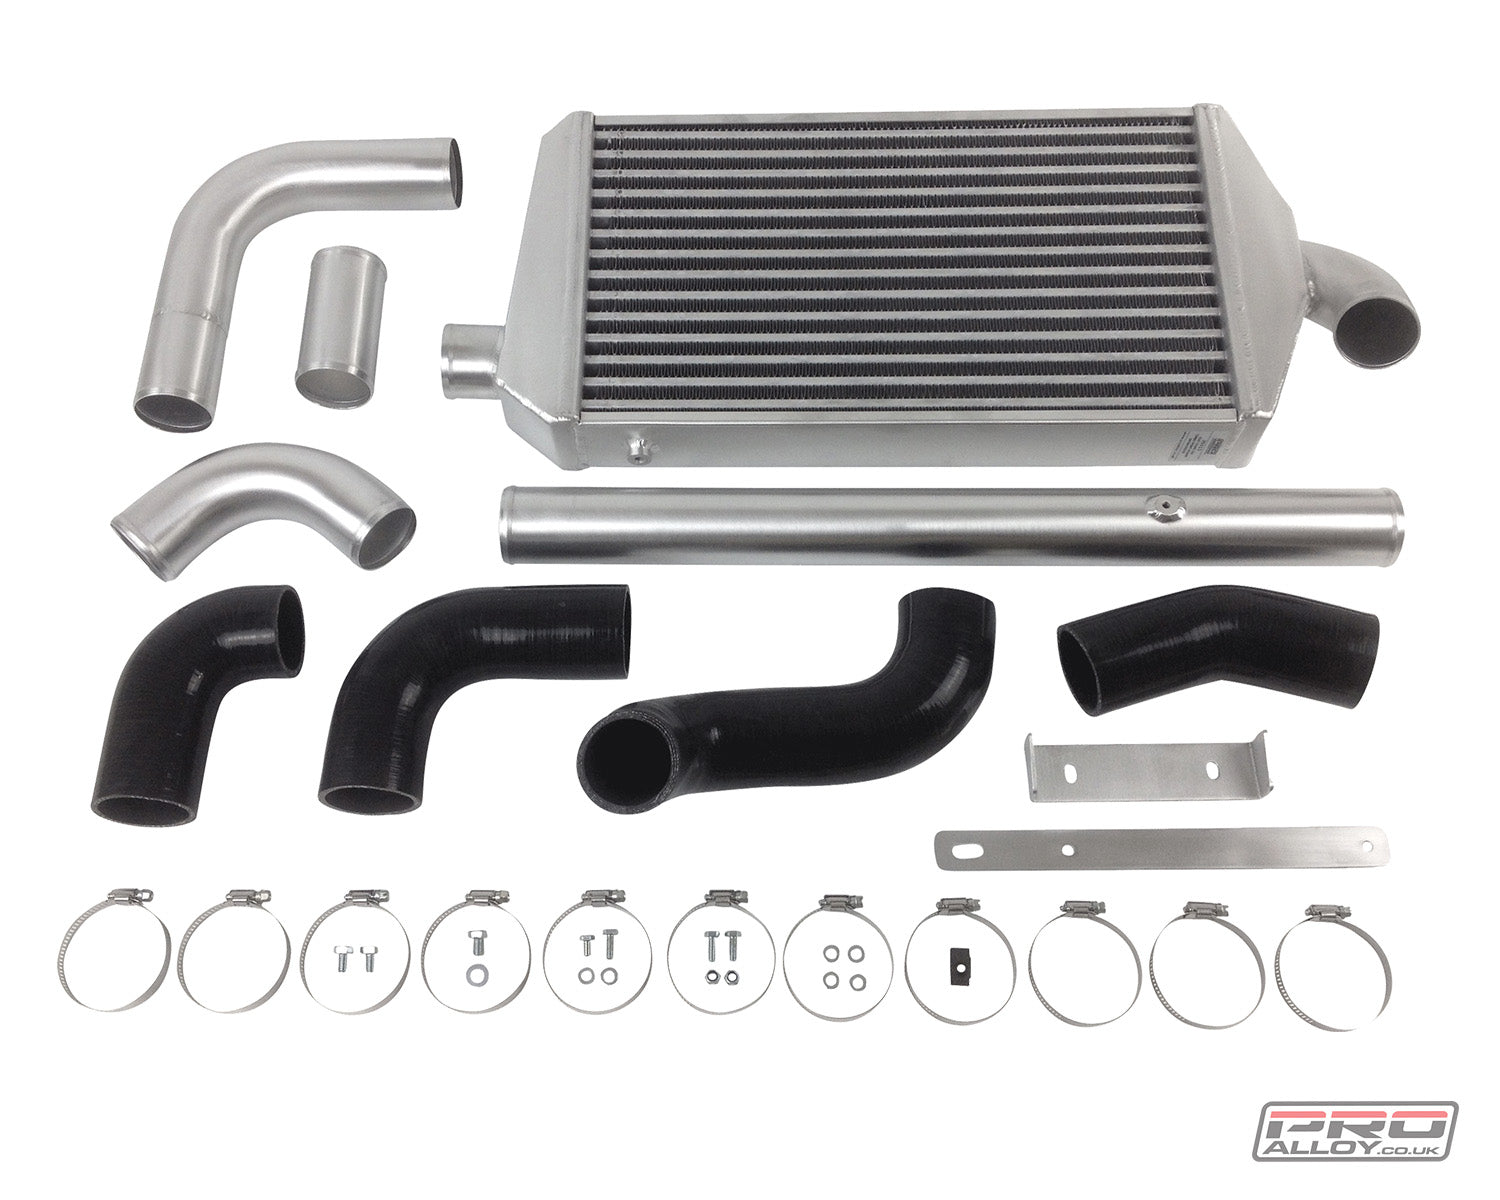 Fiat Coupe Intercooler Kit